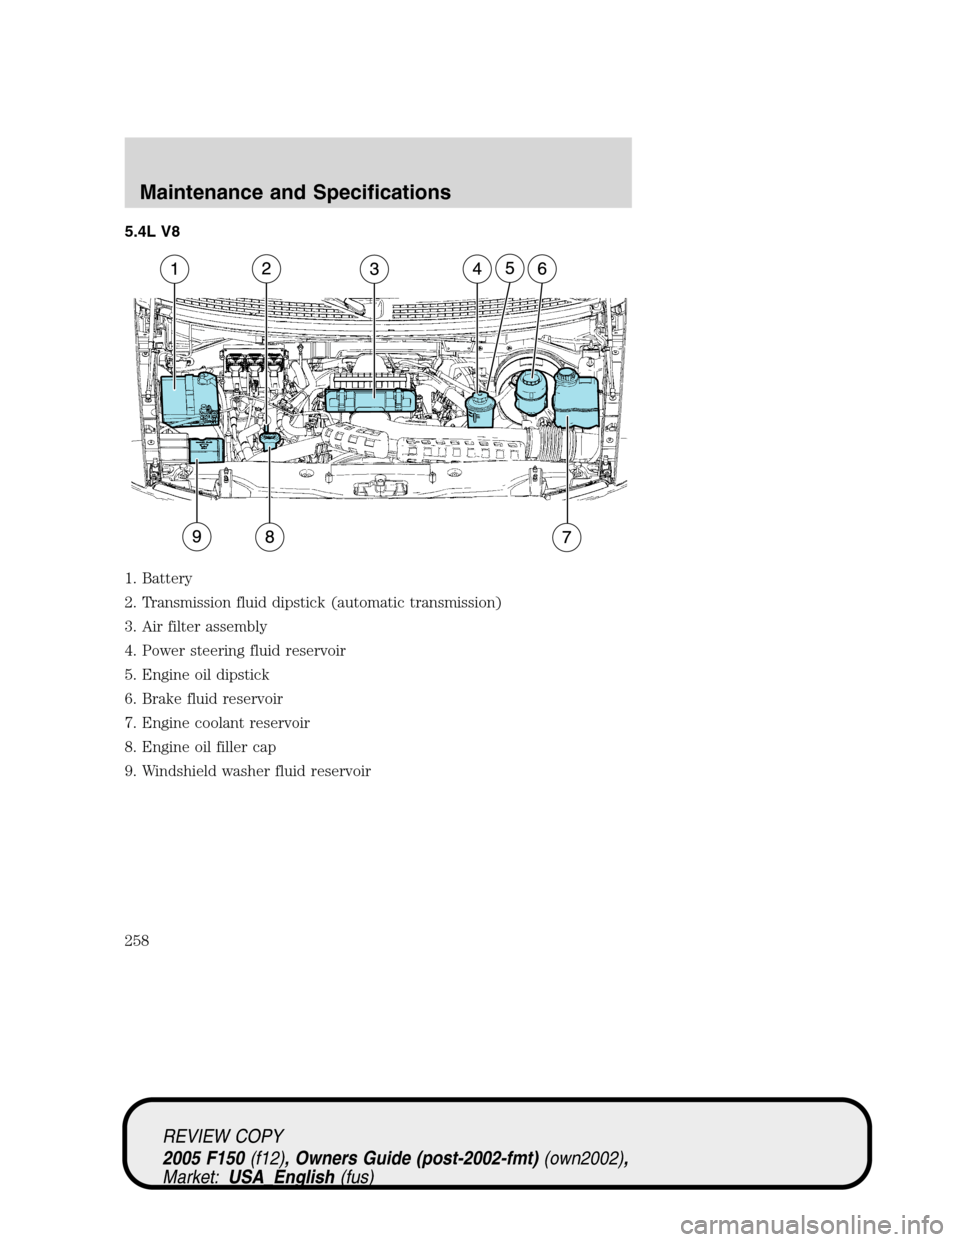 medium resolution of ford f150 2005 11 g owners manual page 258 5 4l v8 engine